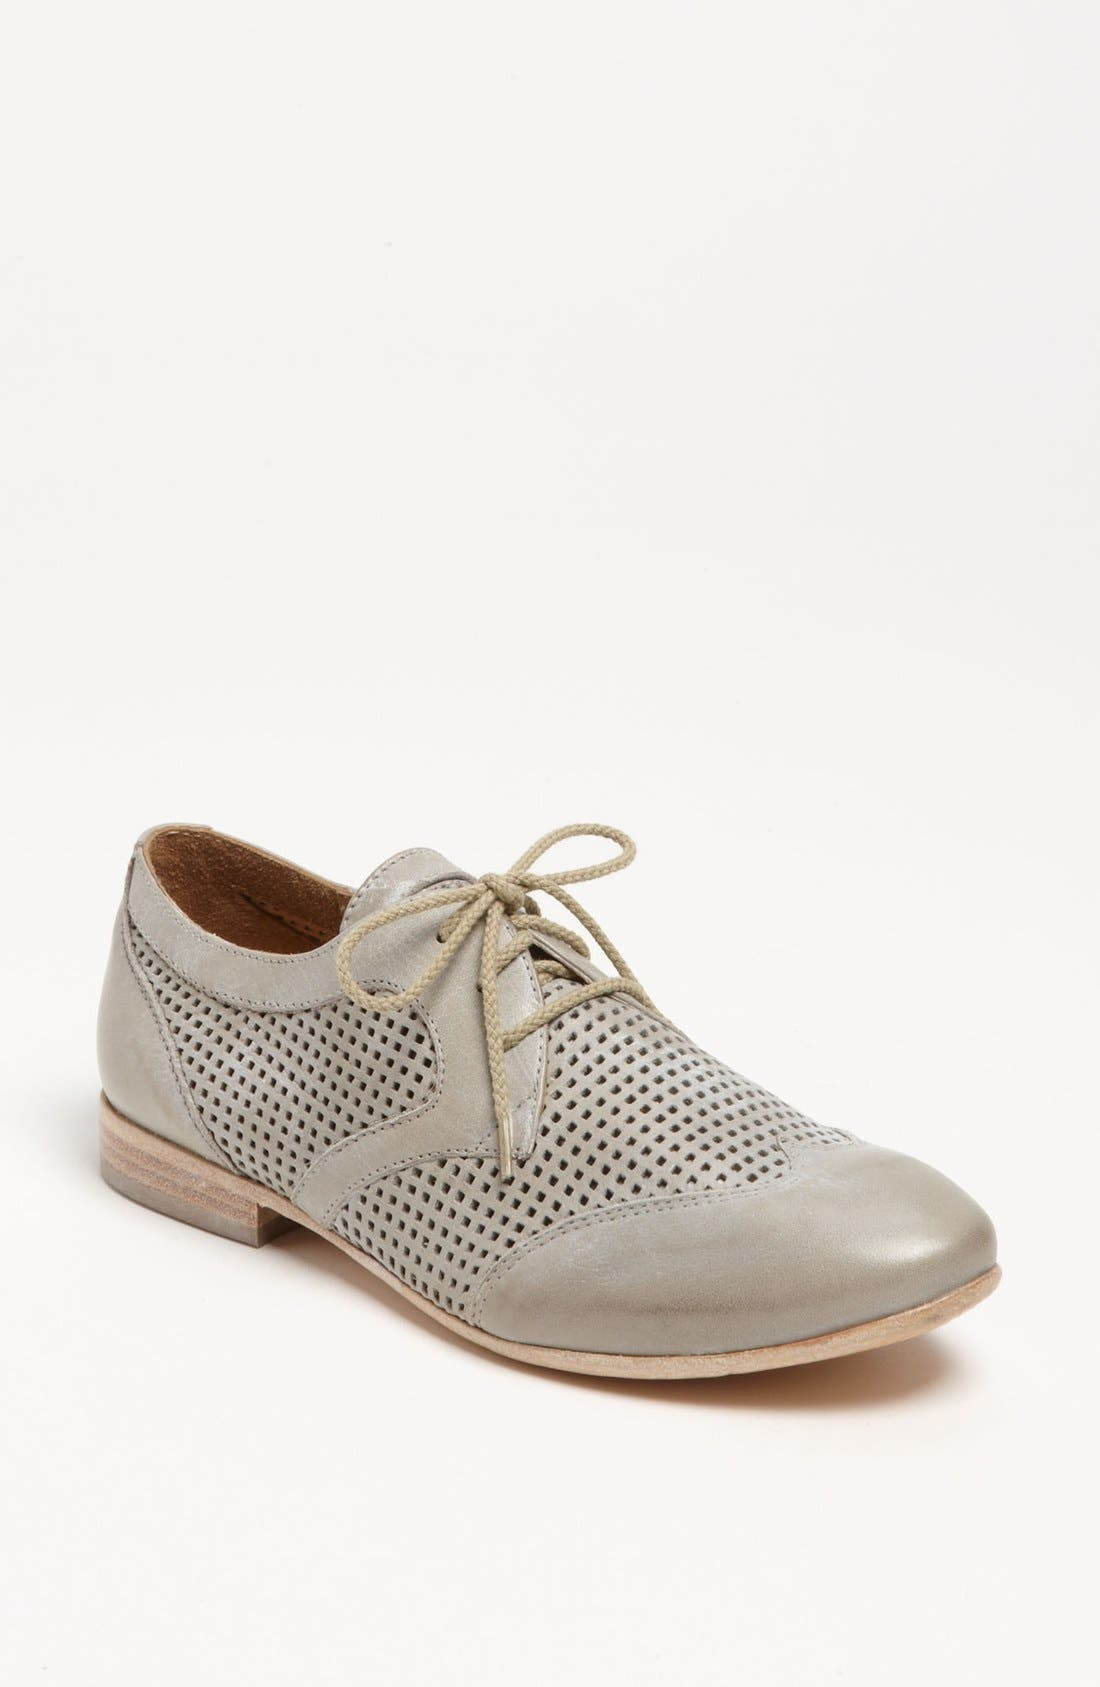 Alternate Image 1 Selected - Giove Perforated Oxford